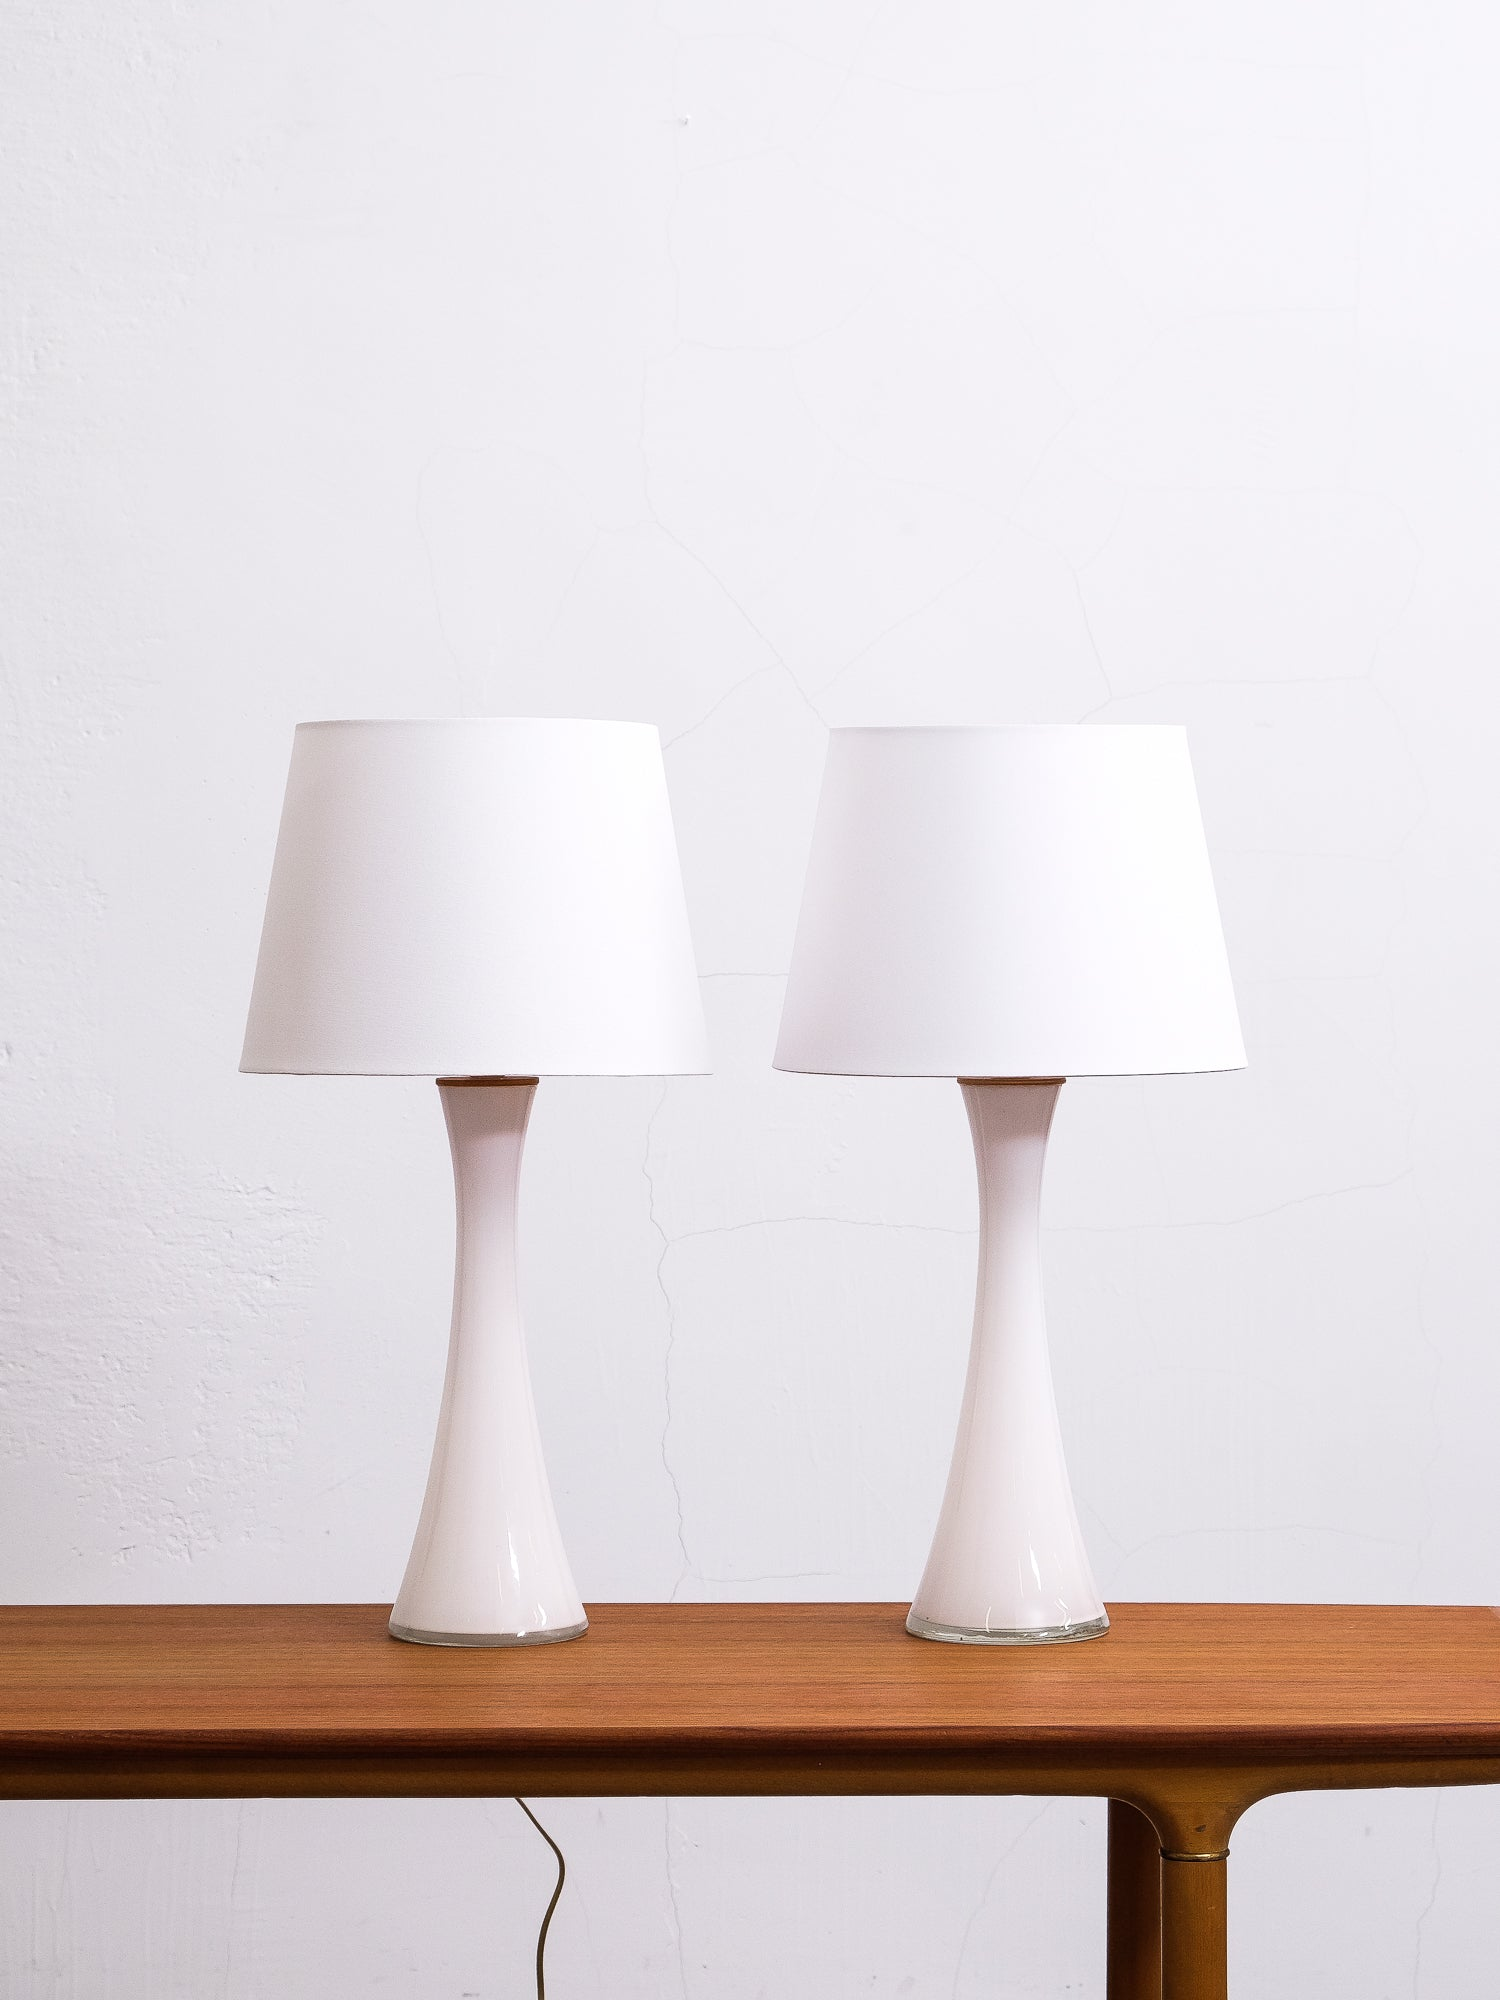 Pair of Opaline Glass and Teak Table Lamps from Bergboms, Sweden, 1960s